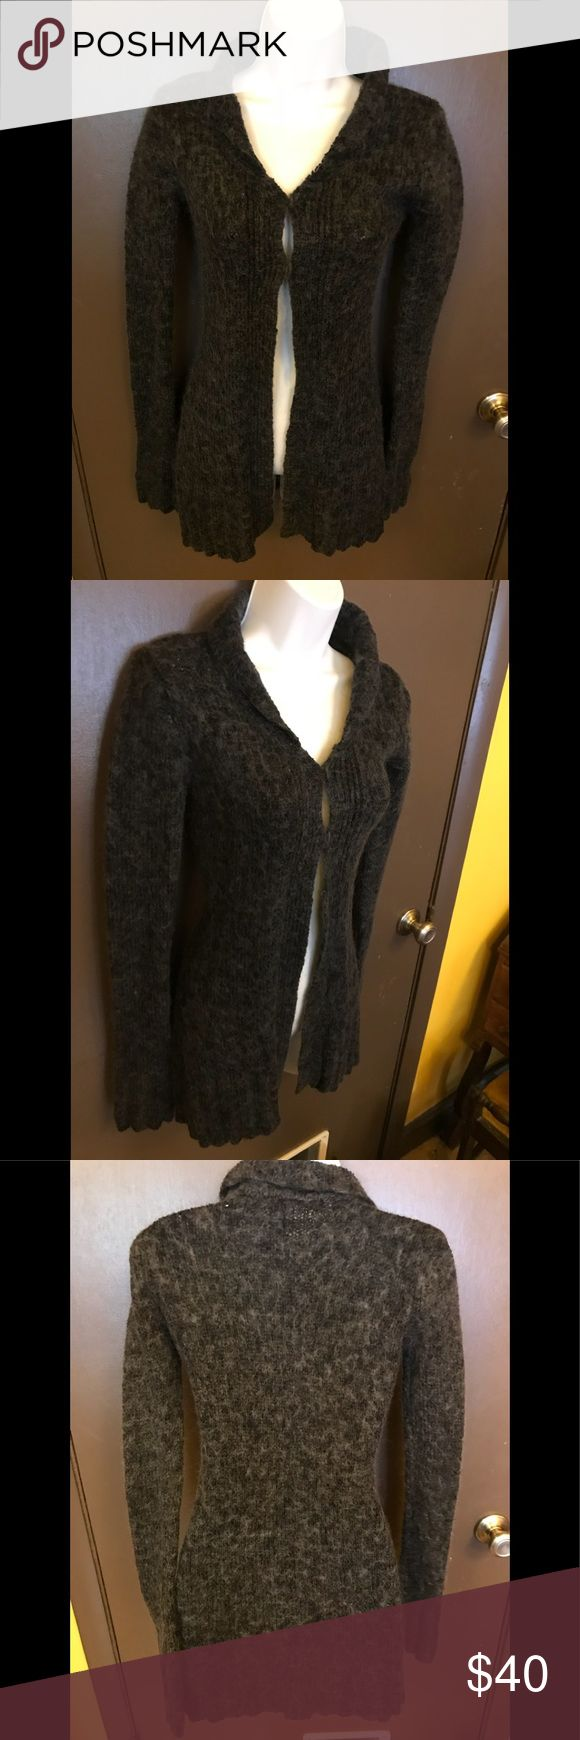 Witch Owned Free People Cardigan Sweater XS-Small Free People Charcoal Cardigan Sweater XS-Small. In my opinion fits XS better, but the tag says small. Two hook and eye closures at the top. Nice and warm. This is my sister in law's, who is a practicing witch. Free People Sweaters Cardigans